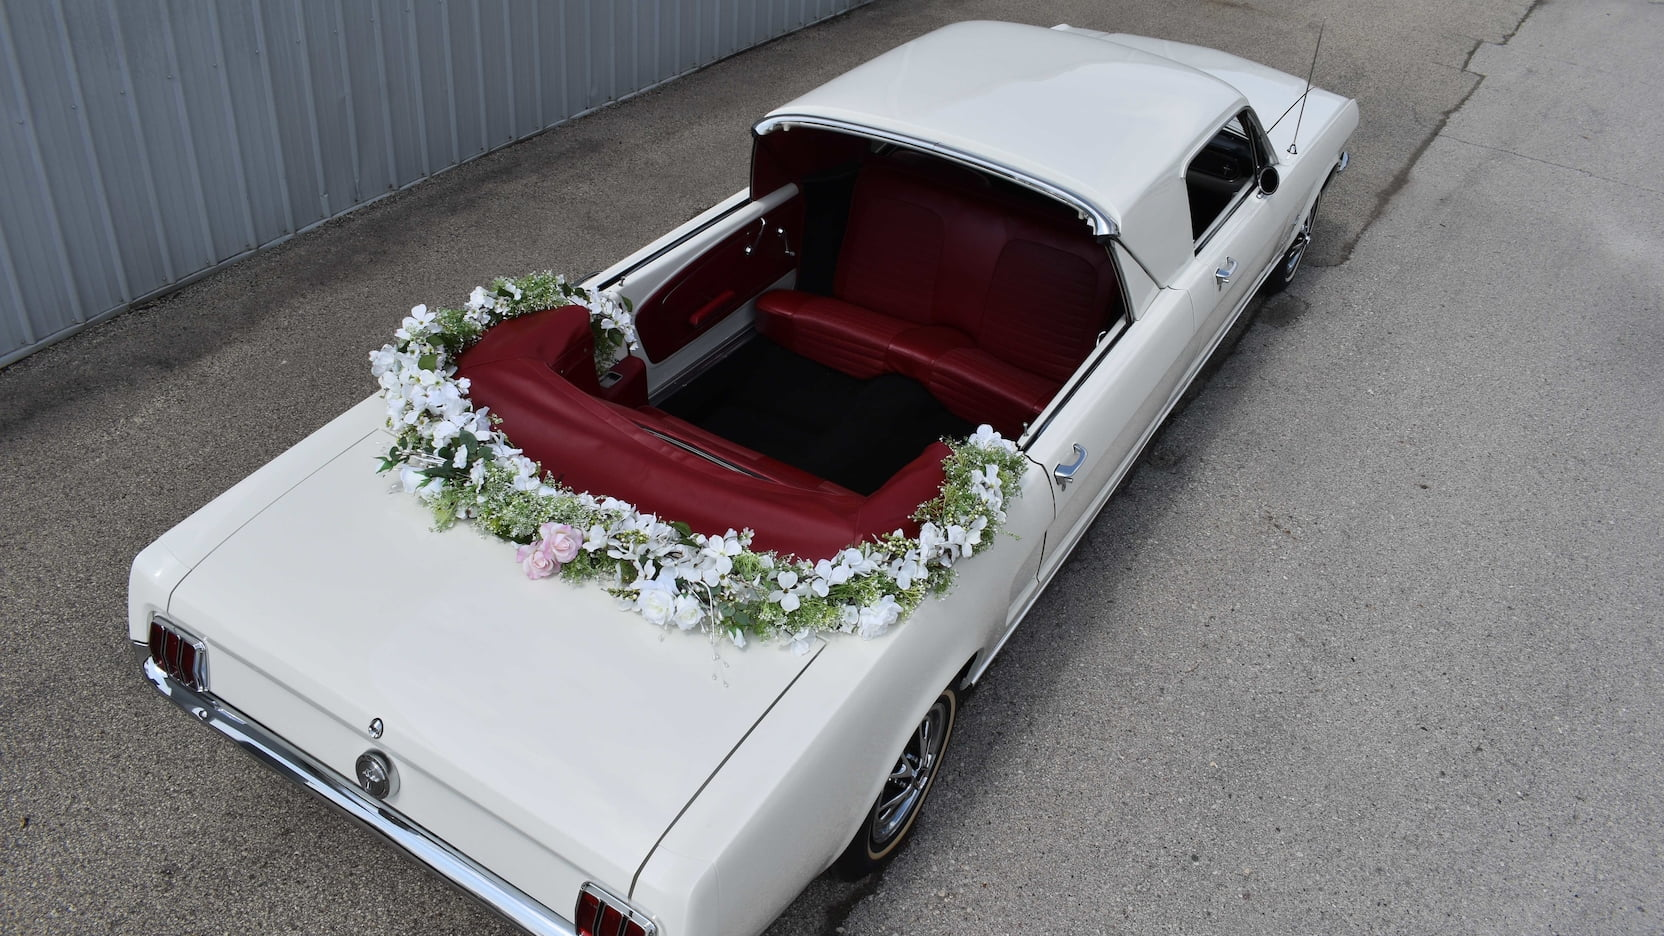 Ford Mustang Limousine overhead rear three-quarter